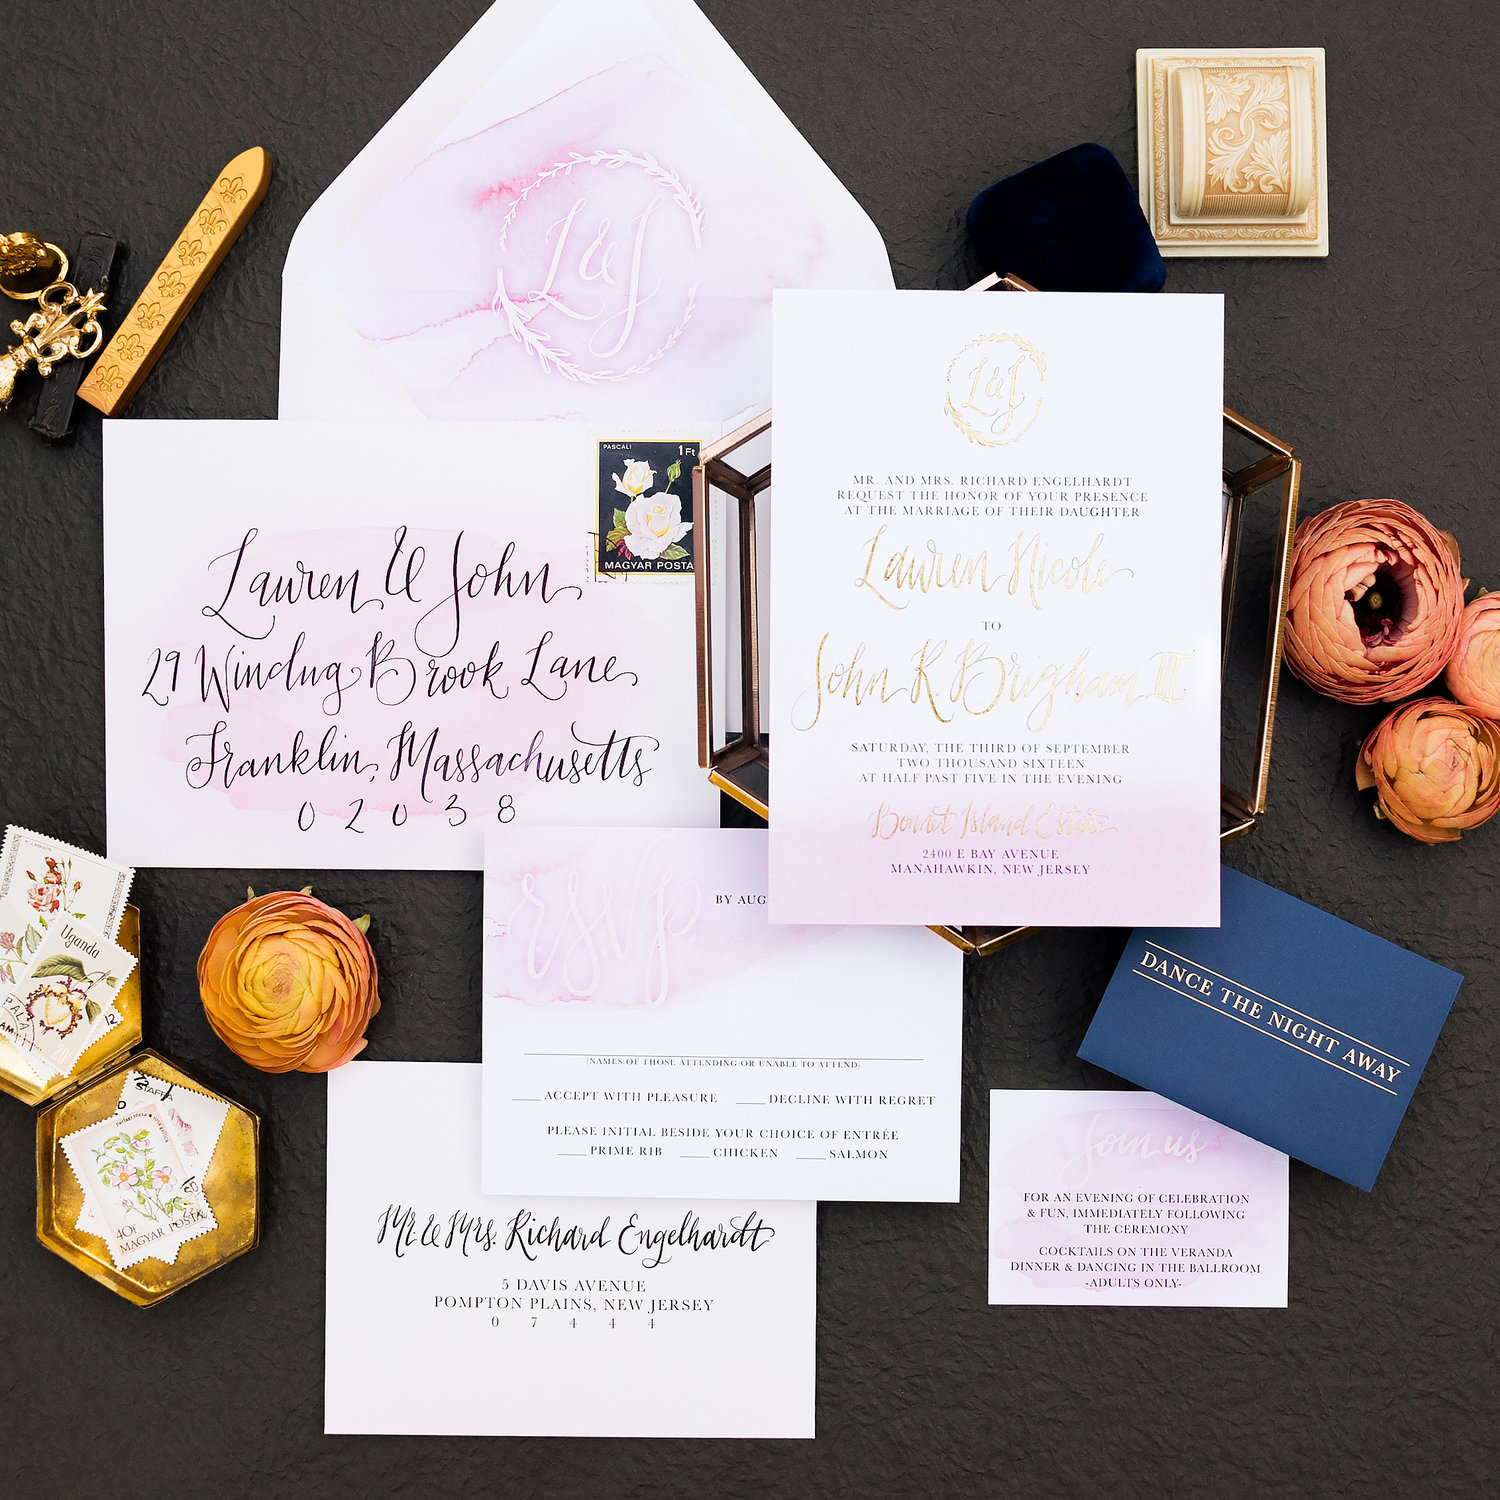 BLUSH & GOLD GOLD FOIL + WATERCOLOR WASH WEDDING INVITATIONS